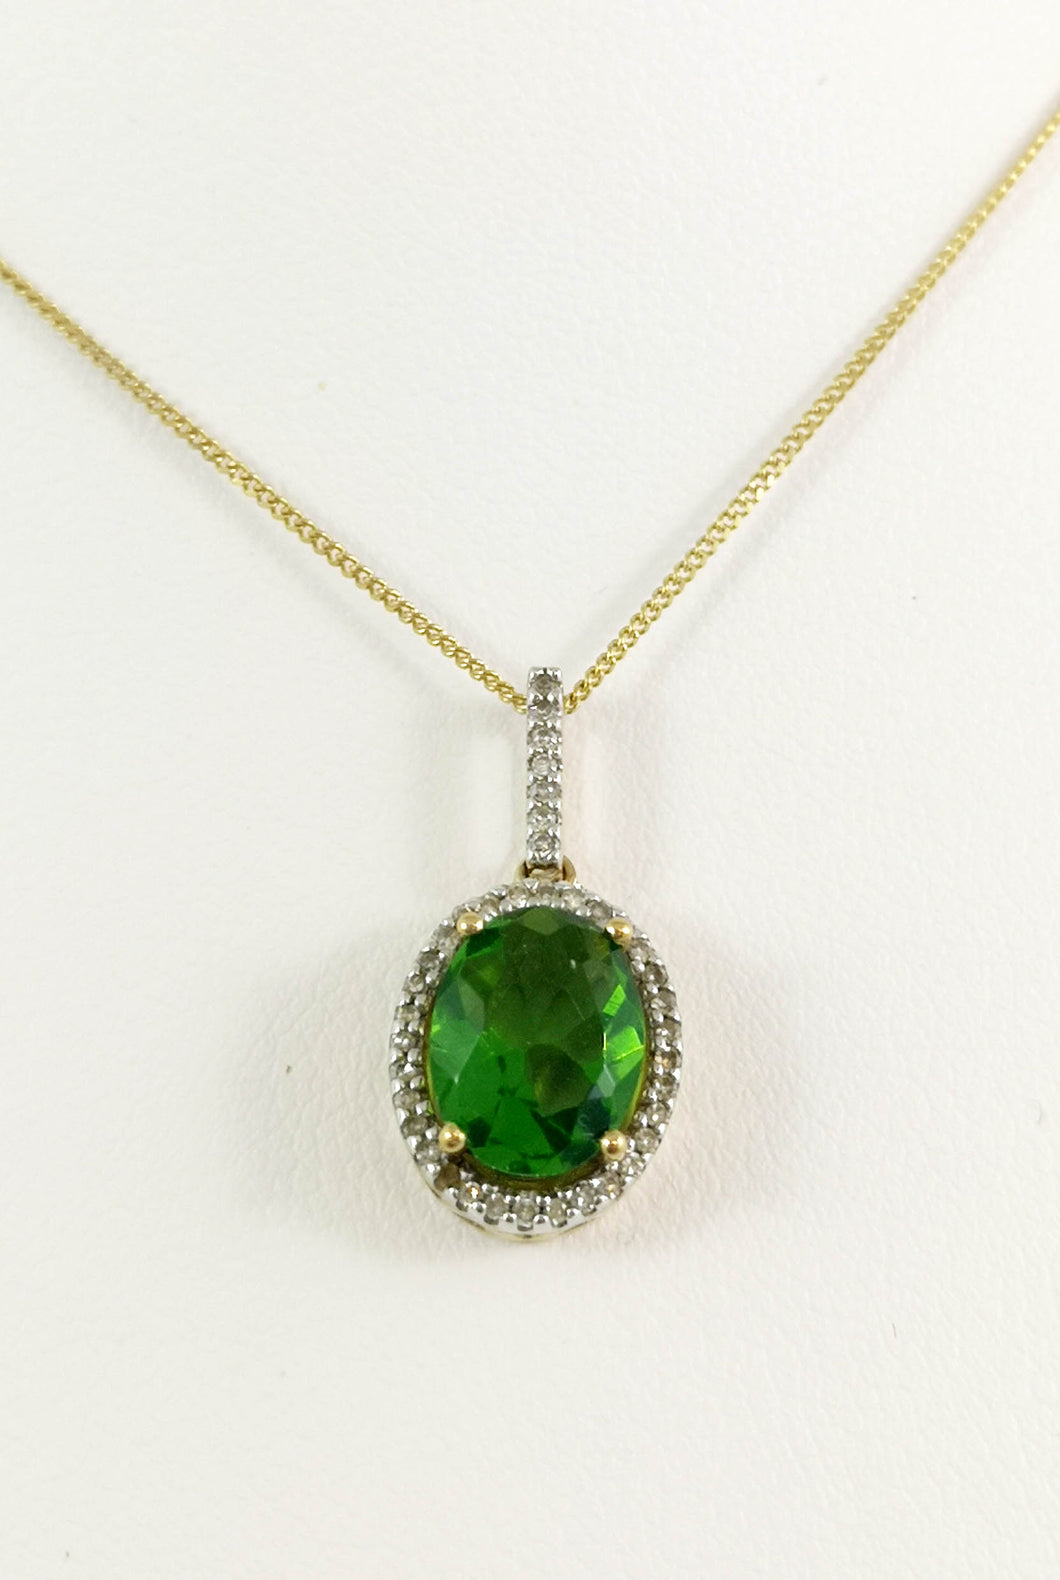 14kt Yellow Gold Genuine Green oval Diopside pendent with Cubic Zirconia Halo